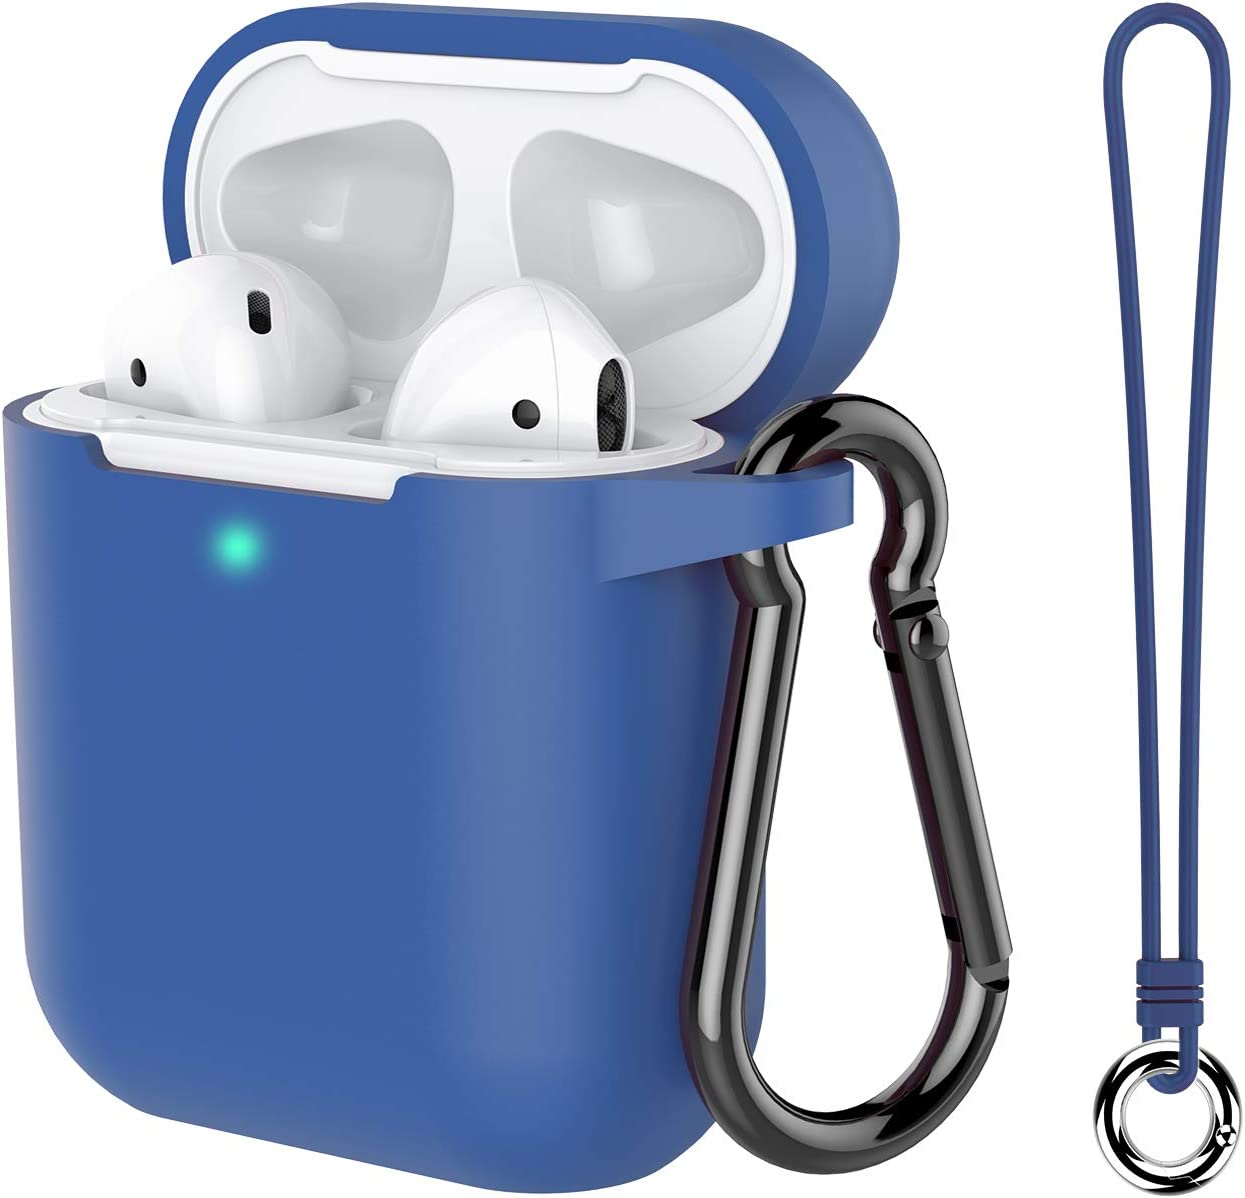 Music tracker Protective Airpods Cover Soft Silicone Chargeable Headphone Case with Anti-Lost Carabiner for Apple Airpods 2 Charging Case Airpods Case Greyish Blue